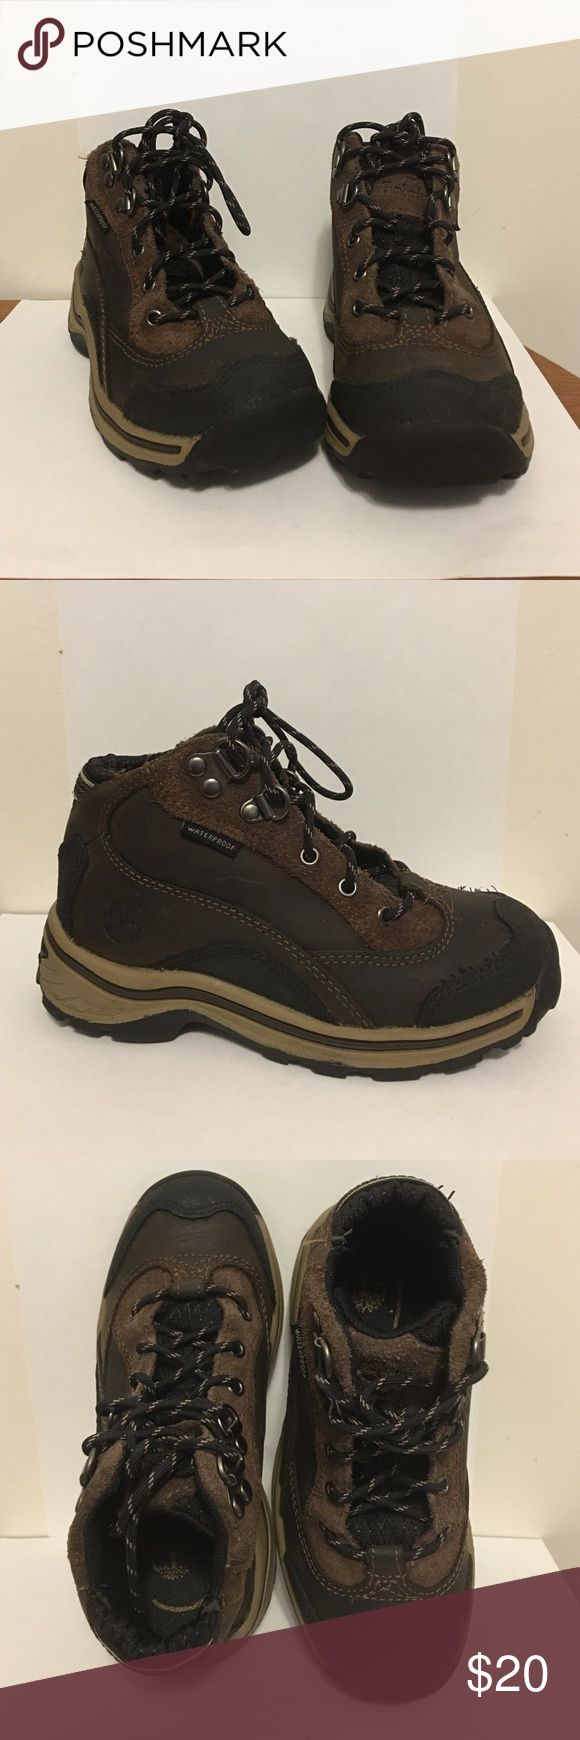 Timberland Kids Boots Good condition, Timberland boots for boys. Dark brown and tan waterproof. They were worn before but they are still in good condition.  Size 10.5 Timberland Shoes Boots